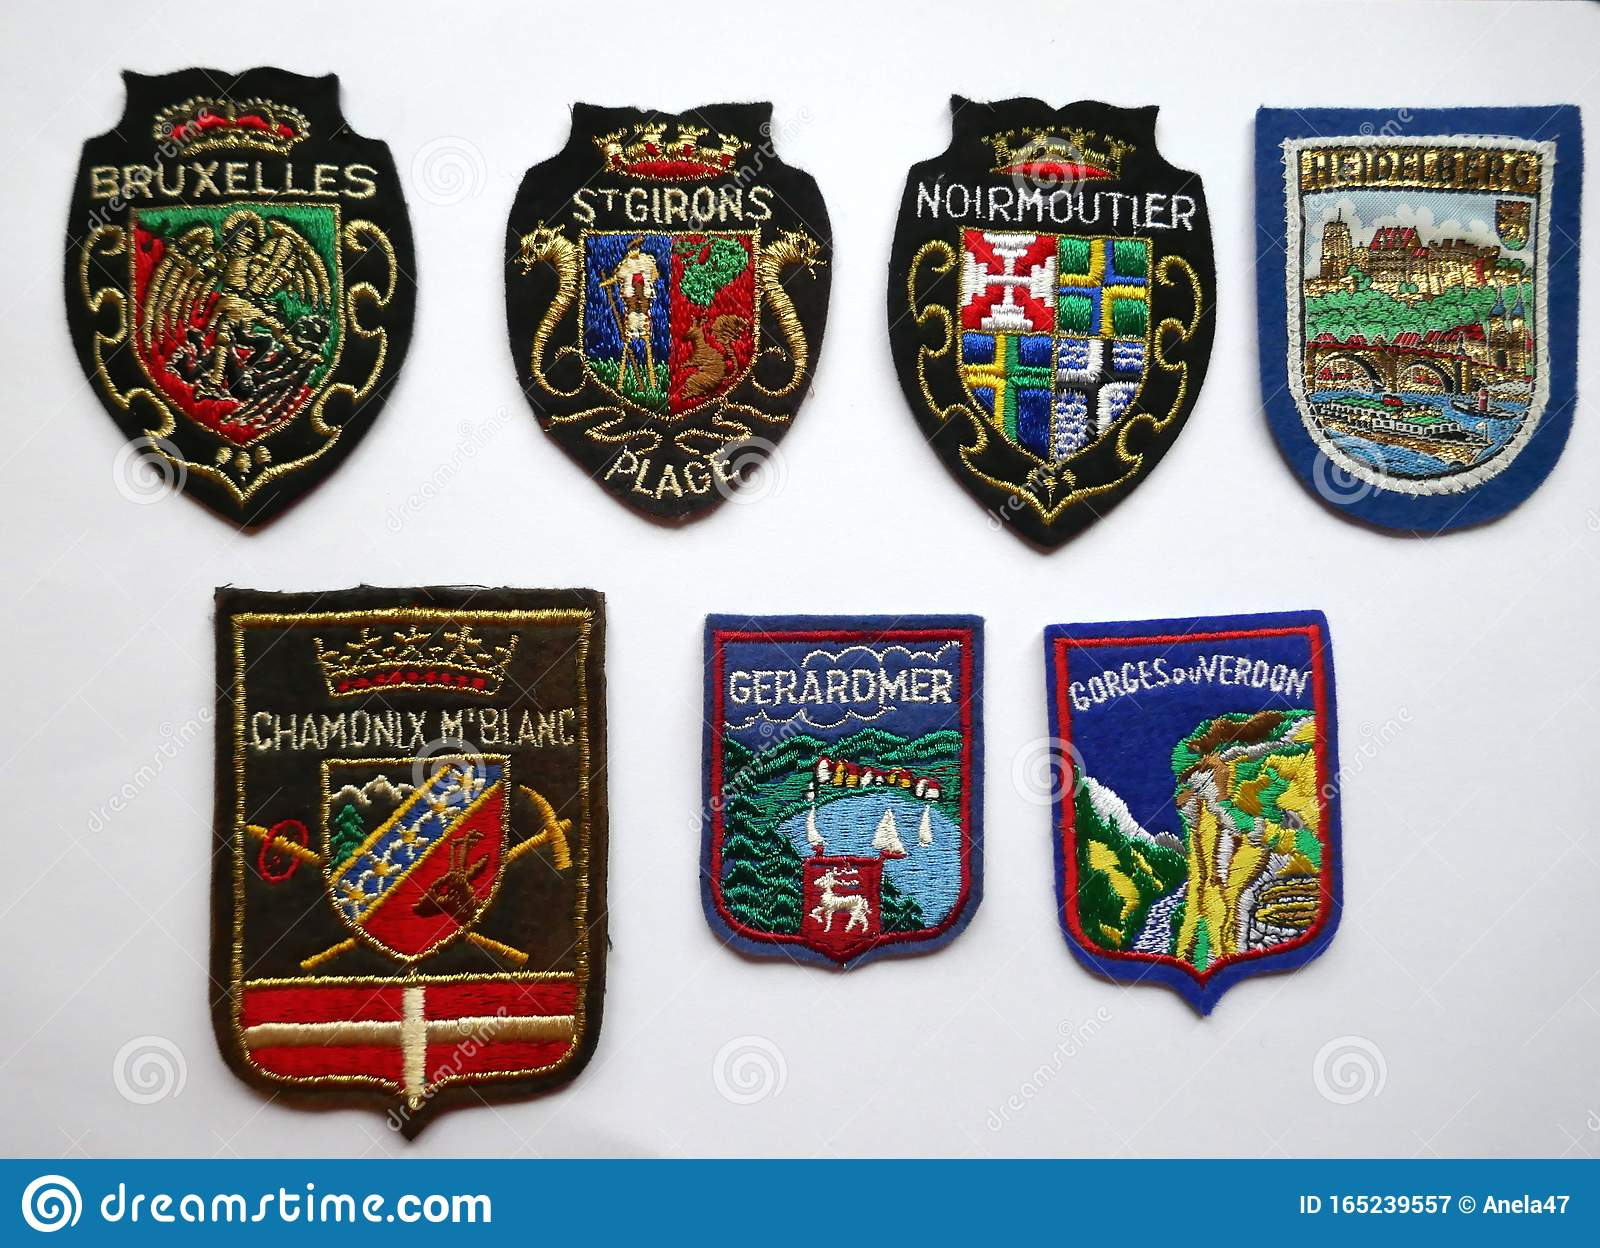 Patch printed embroidery travel souvenir shield crest city france flag nimes